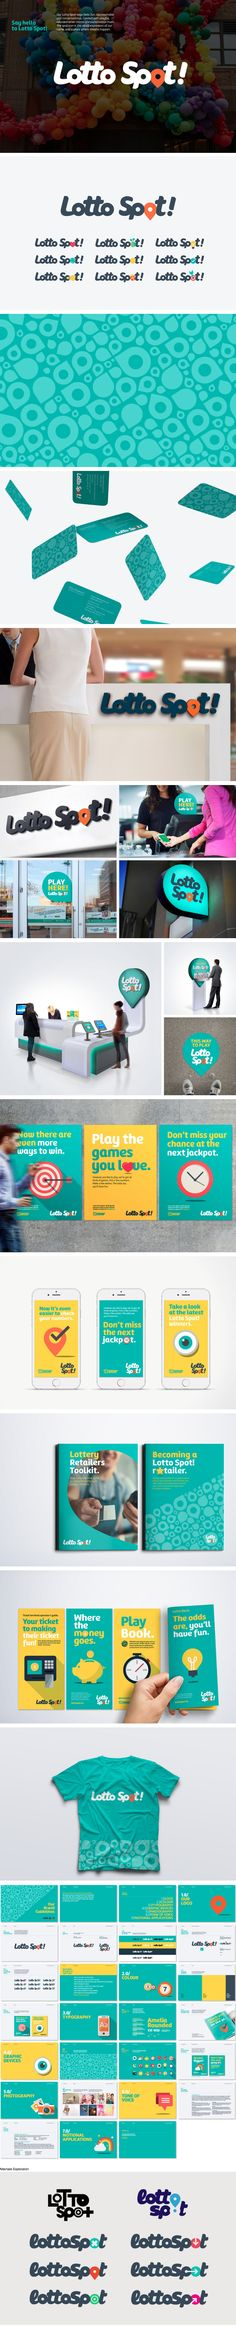 Brand, Logo, Identity and Visual Language for Western Canada Lottery Corporation